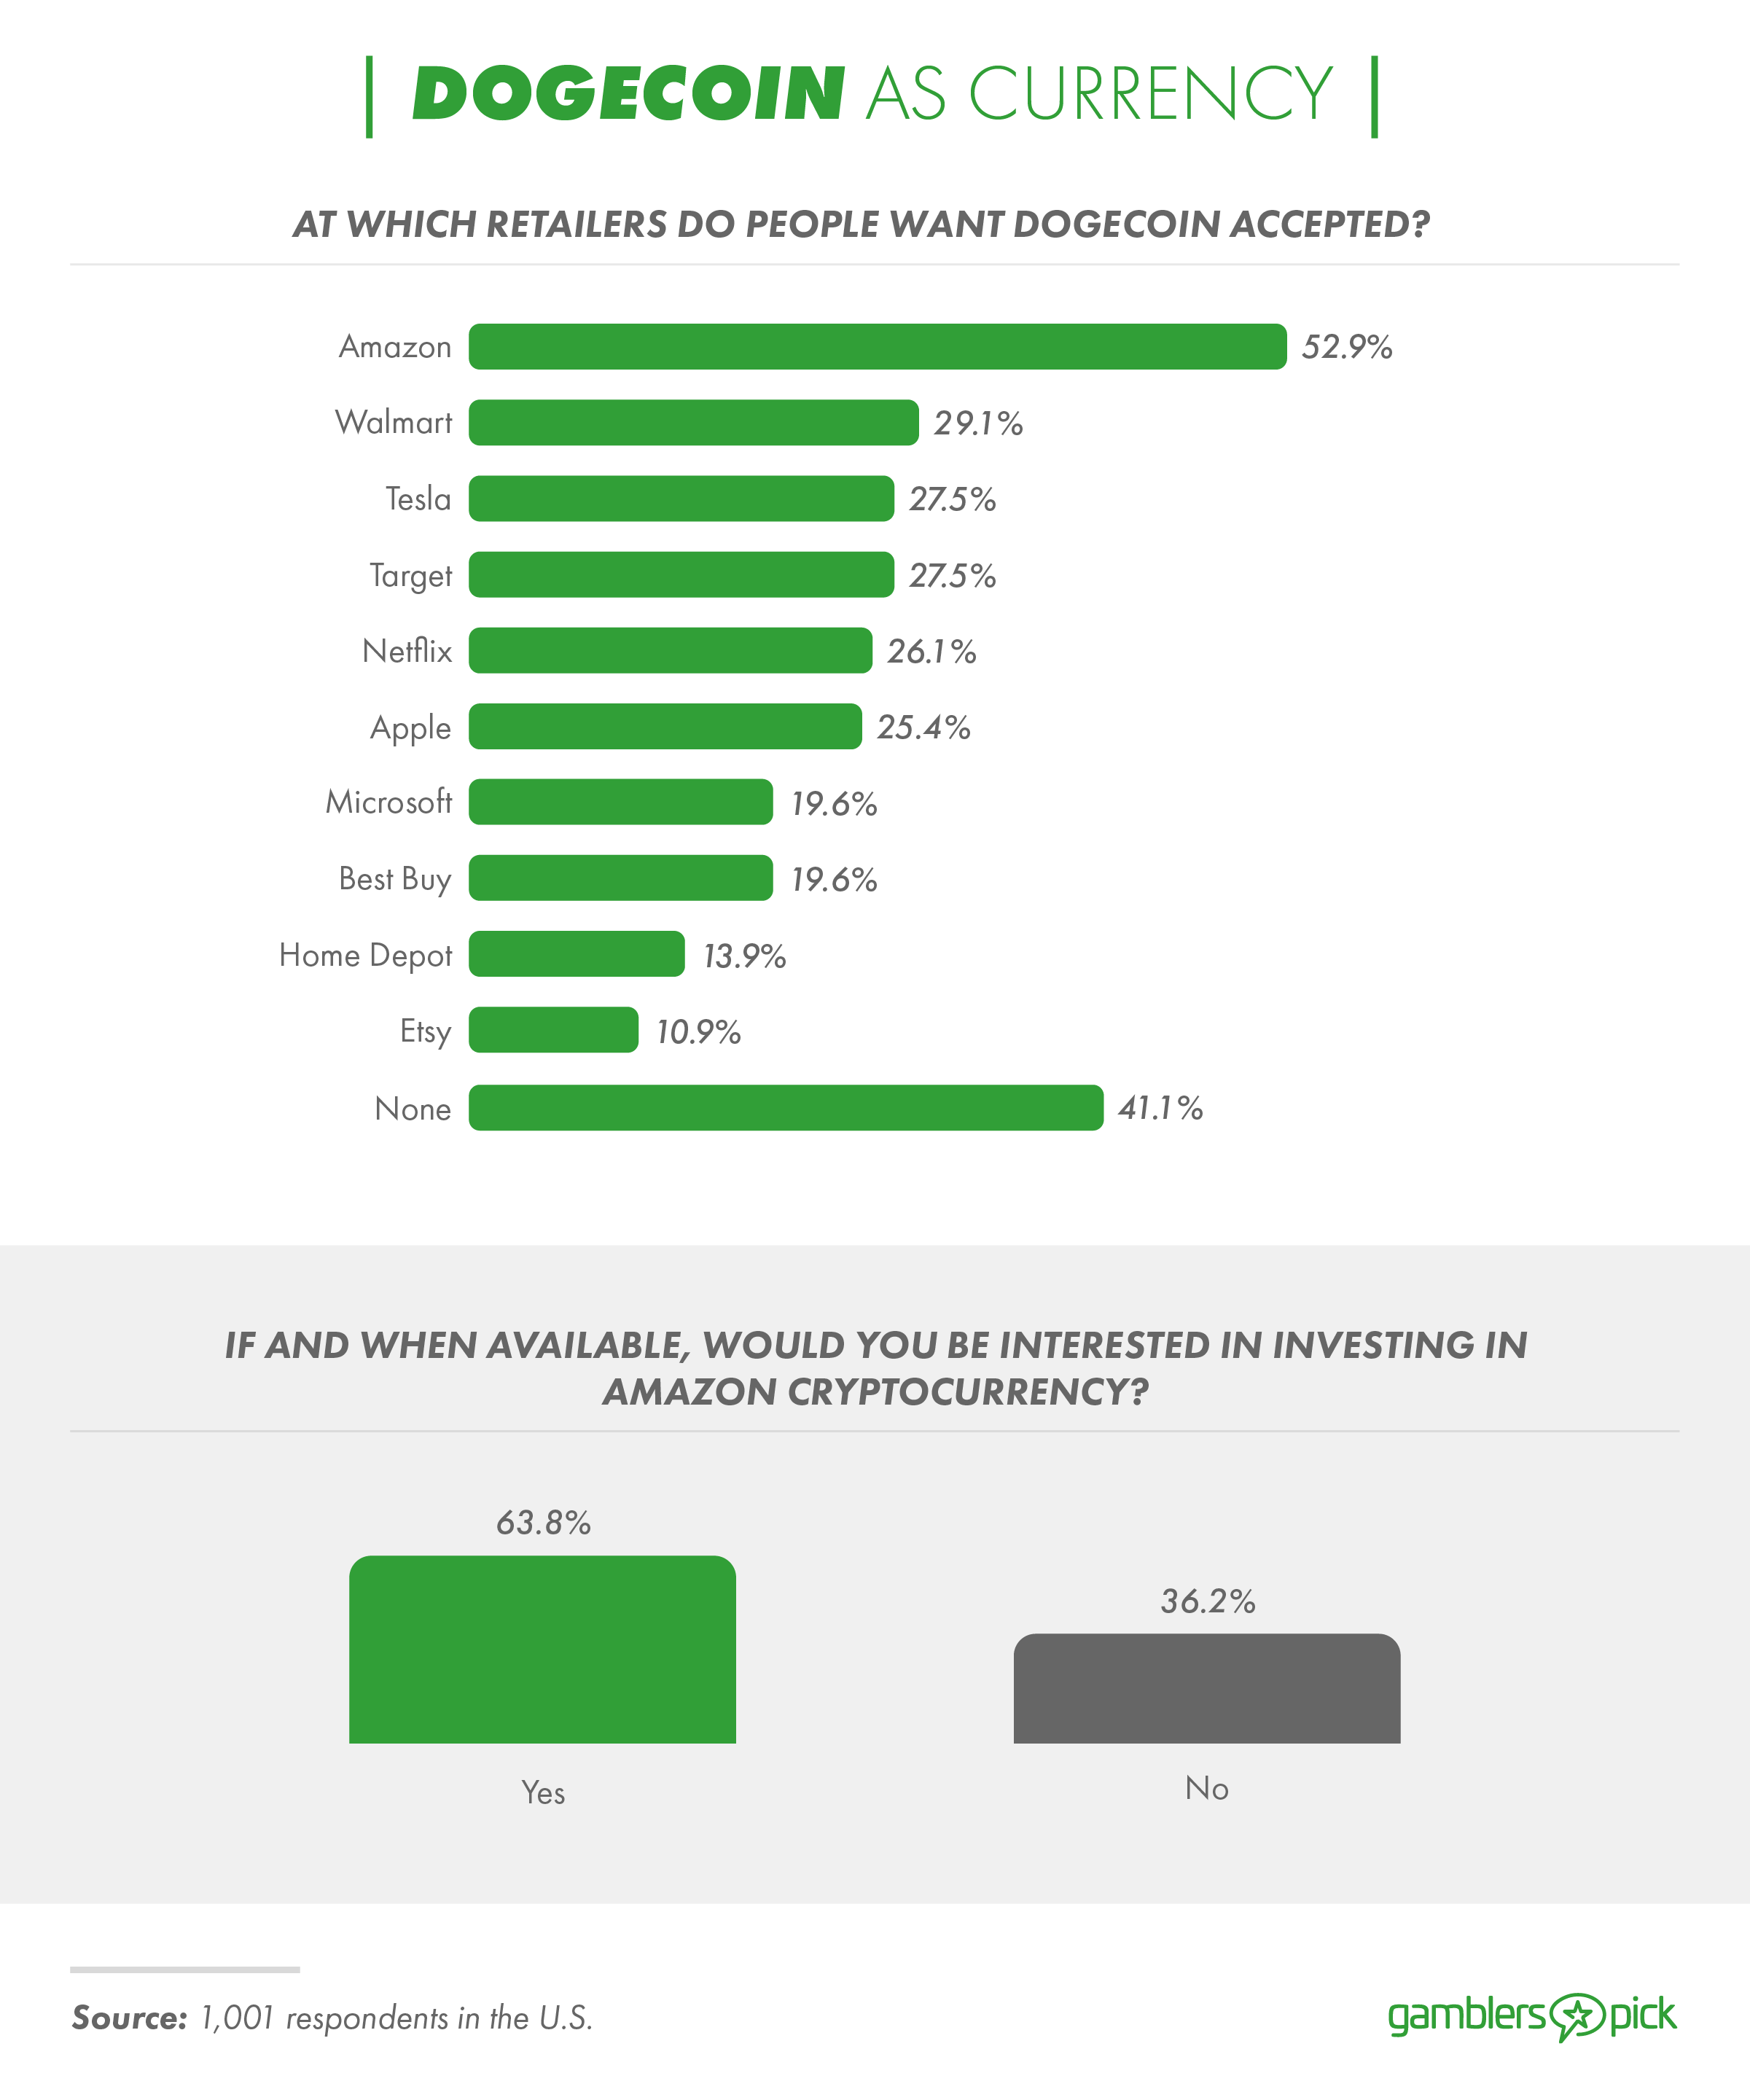 Public perceptions of major retailers accepting Dogecoin as a form of payment.